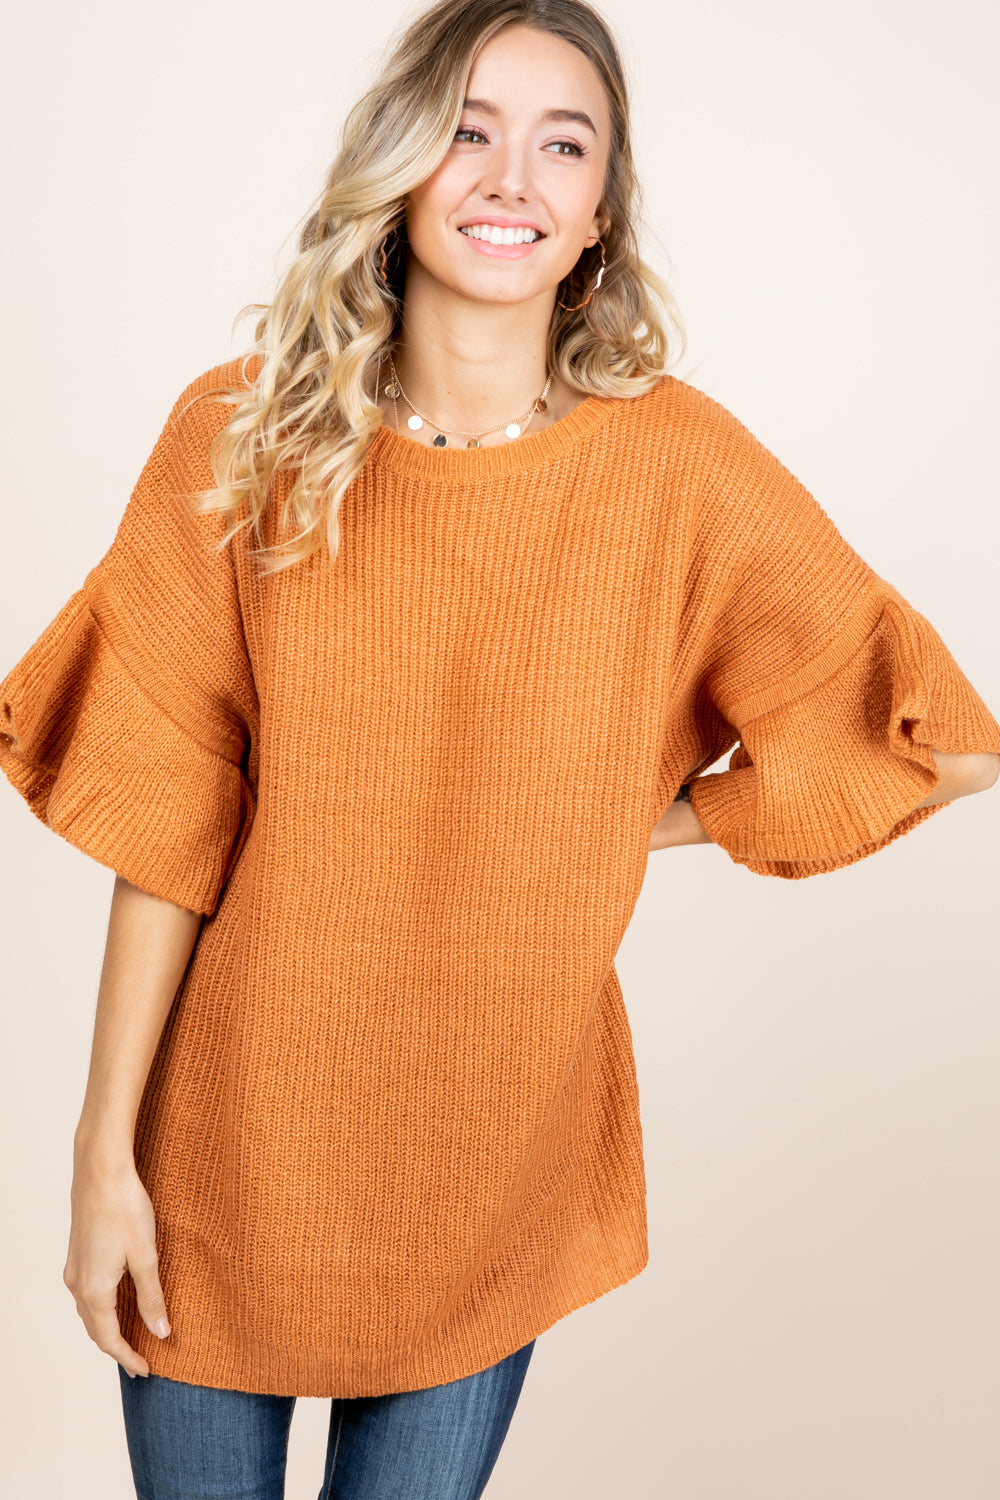 Flutter Bell Sweater - Rust/Burnt Orange